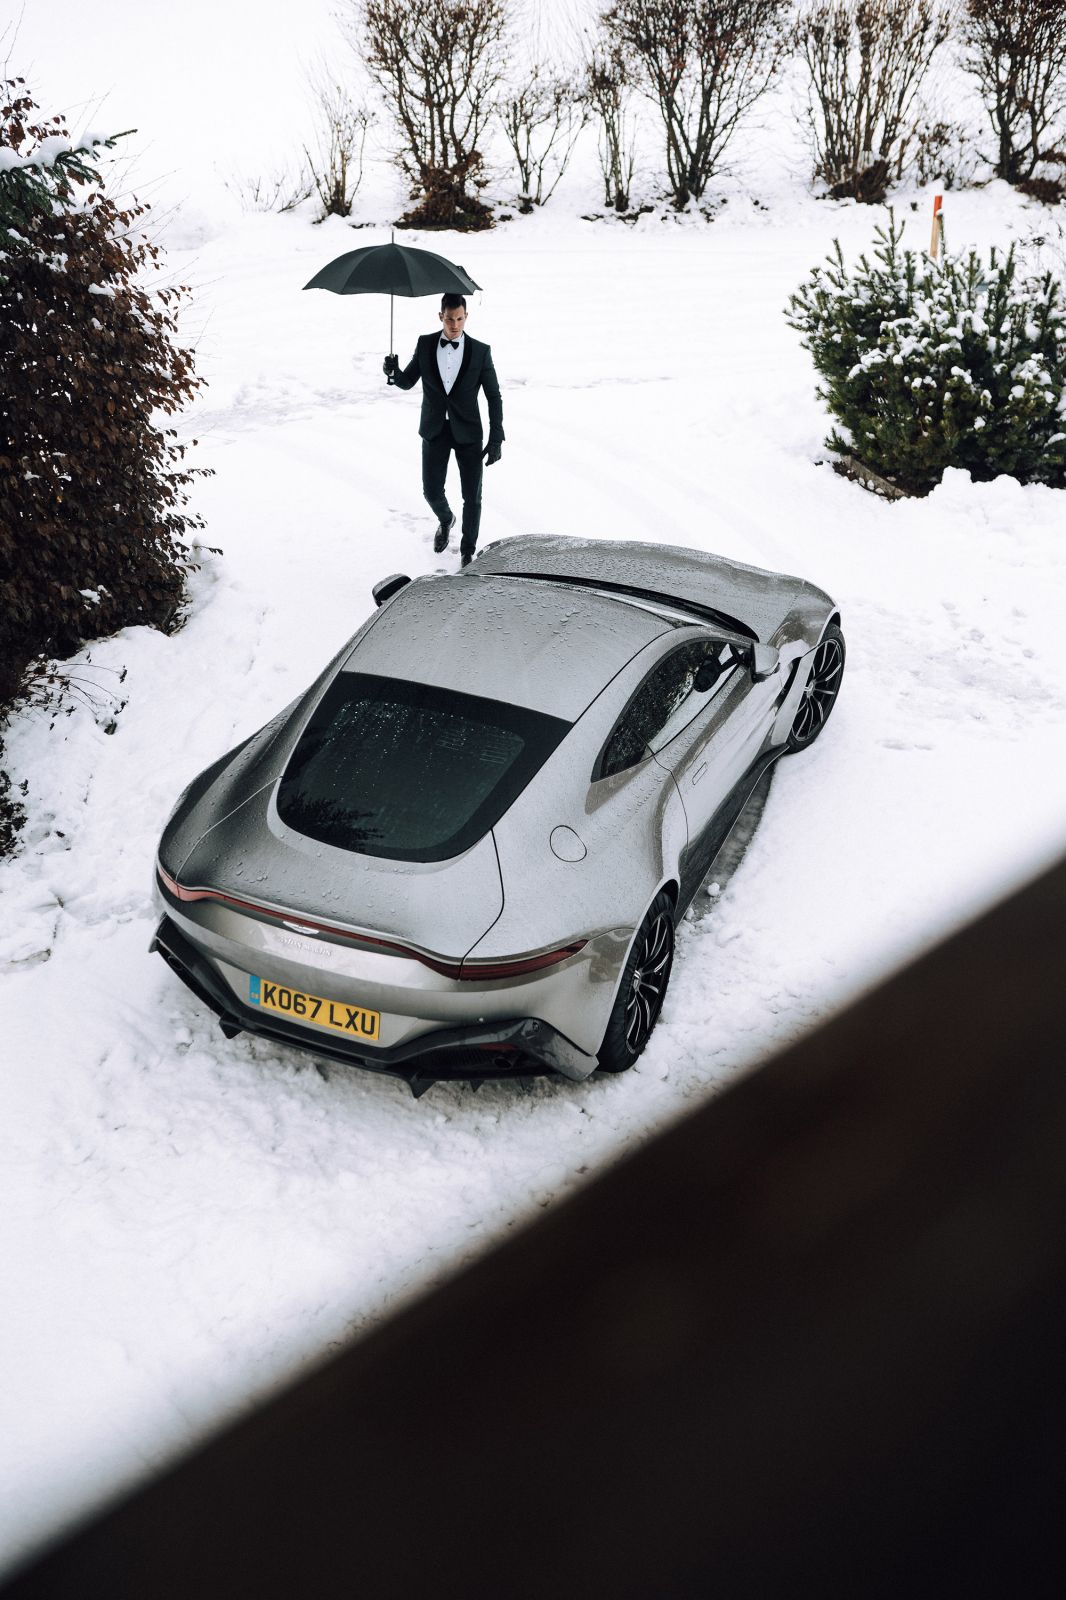 vantage aston martin tom claeren content production